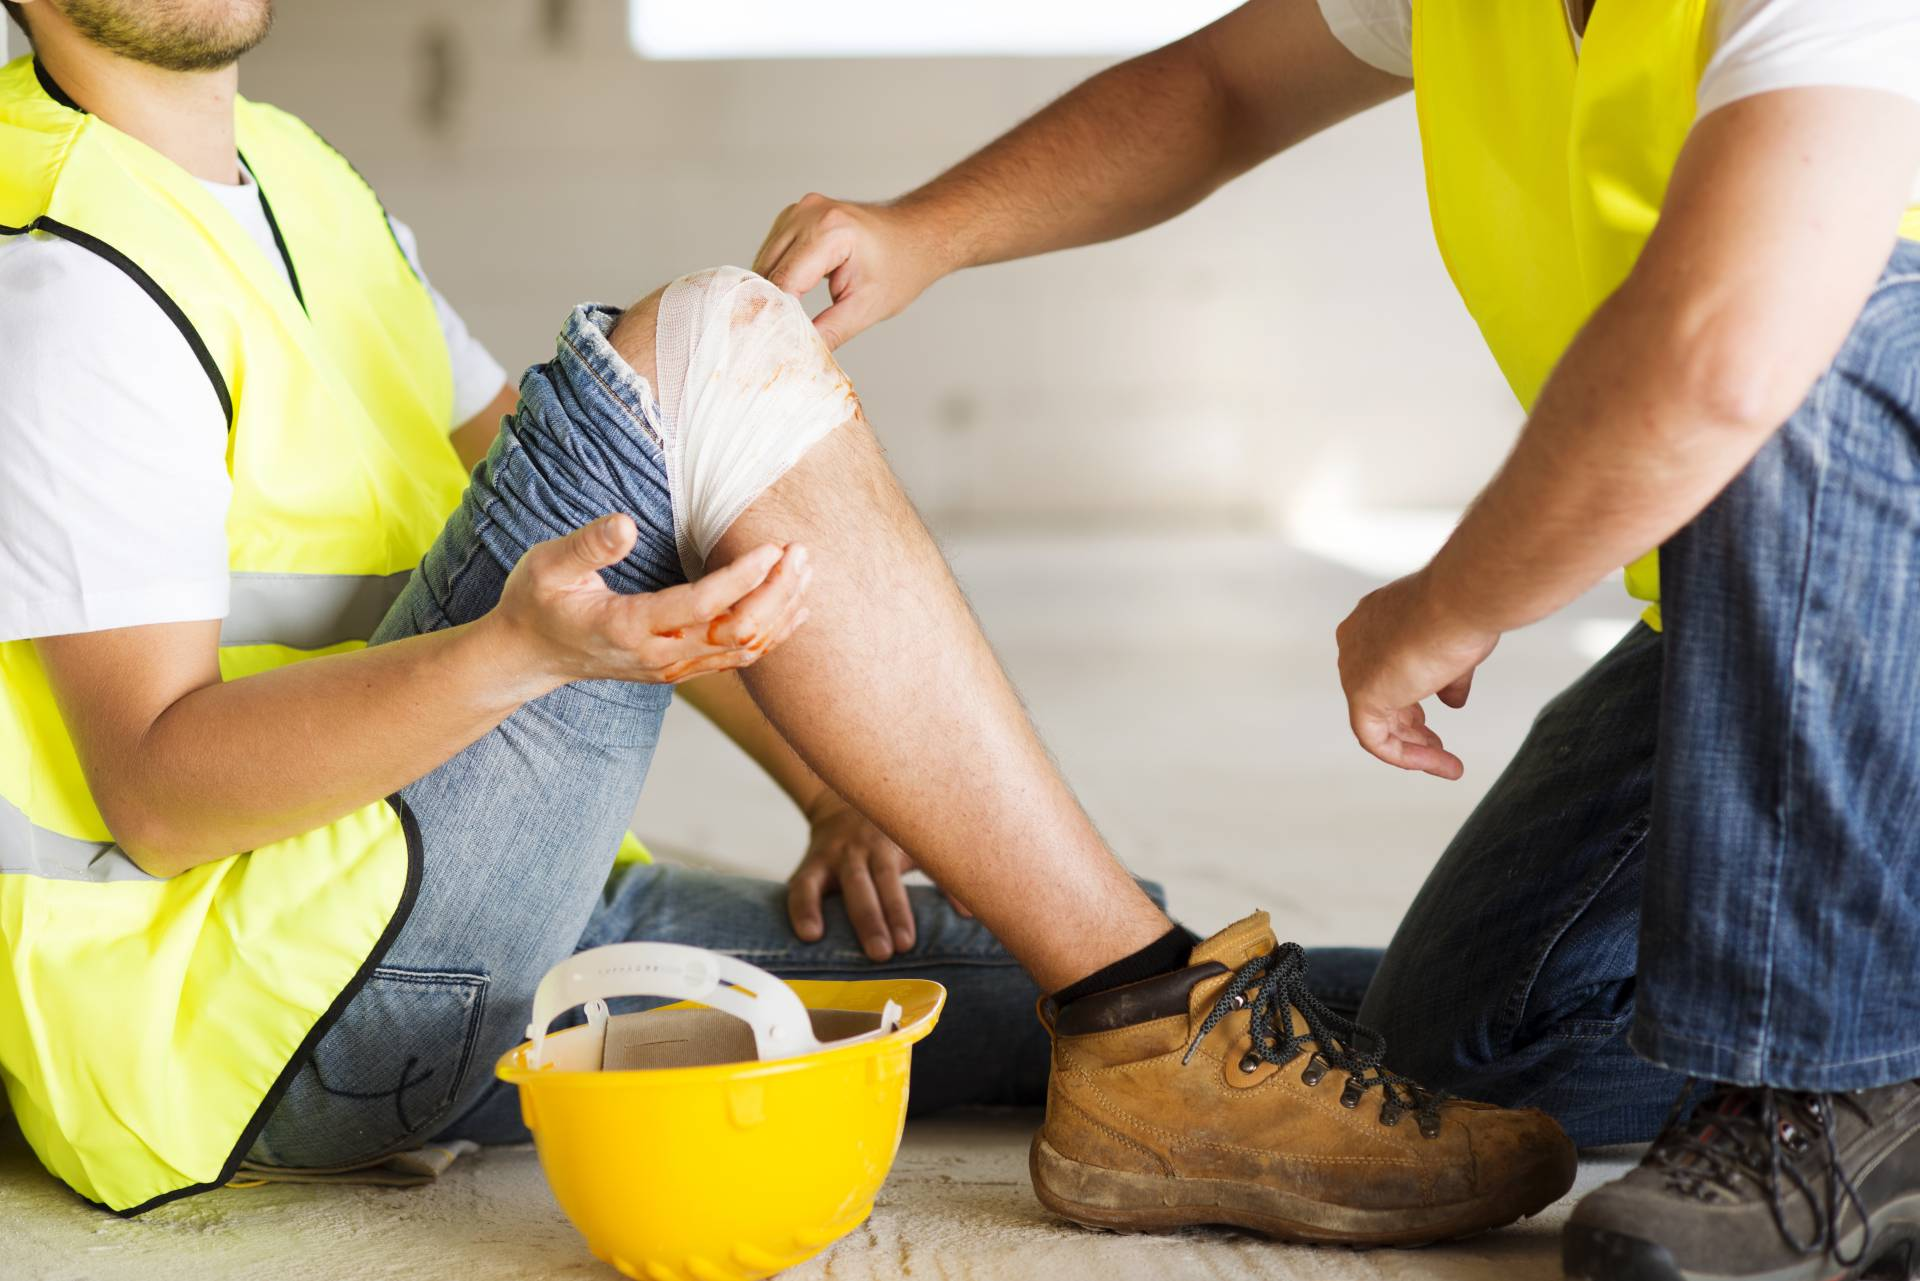 Injured on the job? Schedule a free consultation with an Angell Firm Lawyer